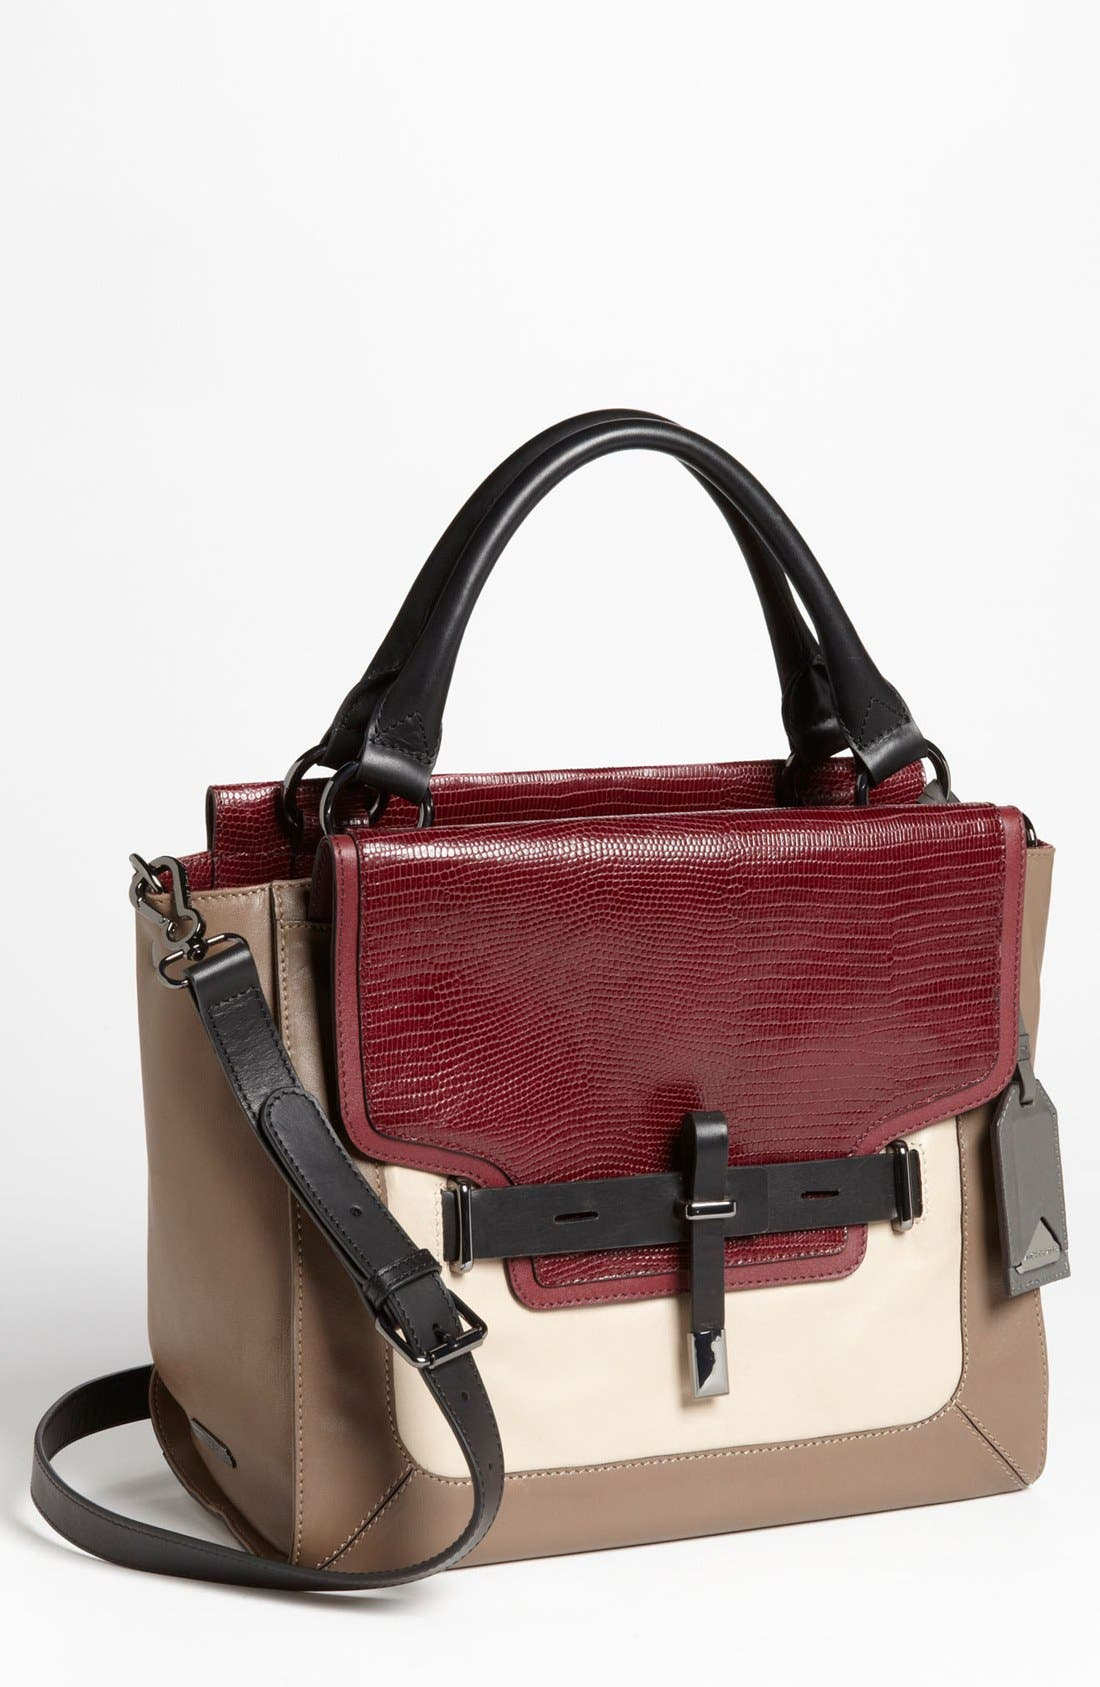 Main Image - Vince Camuto 'Max' Leather Satchel, Medium